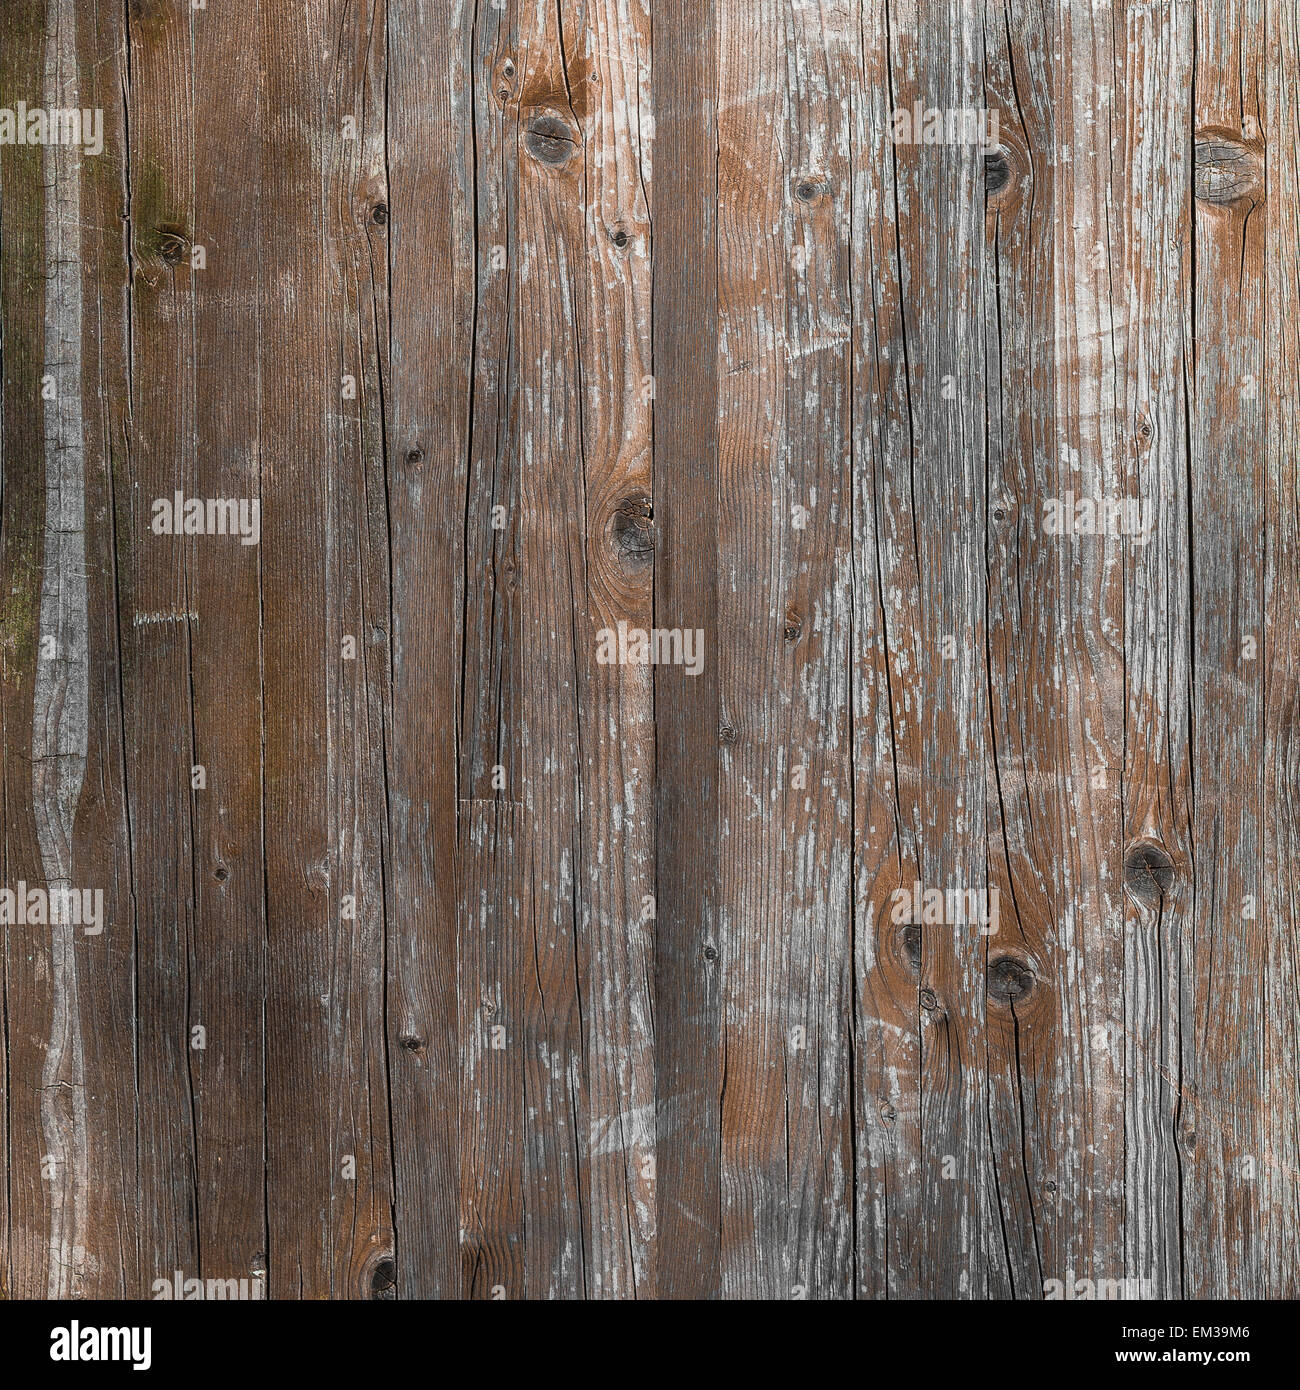 Planks of rustic wood with light brown tones. - Stock Image